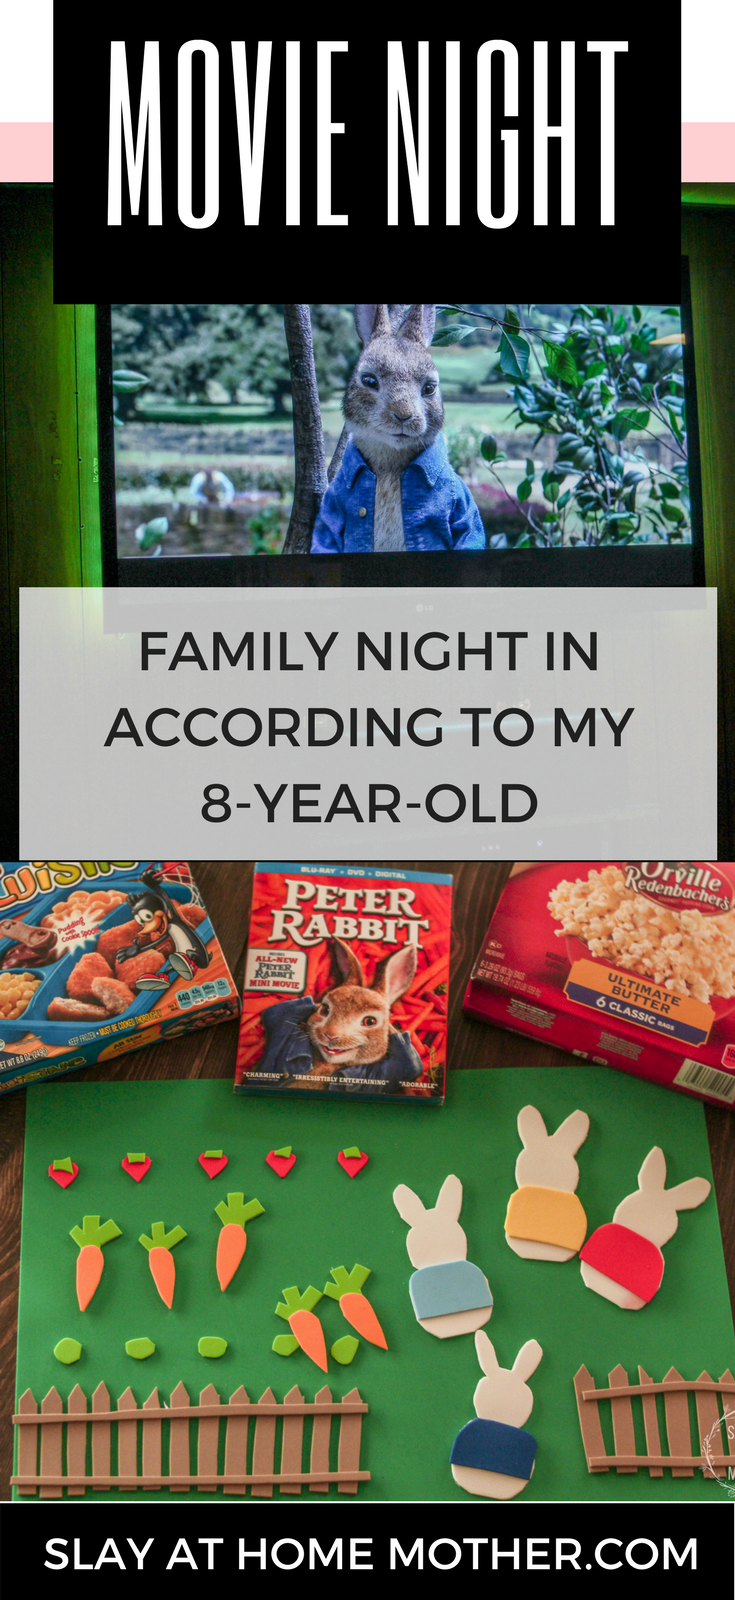 #ad FAMILY NIGHT IN ACCORDING TO MY 8-YEAR-OLD #collectivebias #WelcomeToFamilyNight #PeterRabbit #slayathomeother - SlayAtHomeMother.com